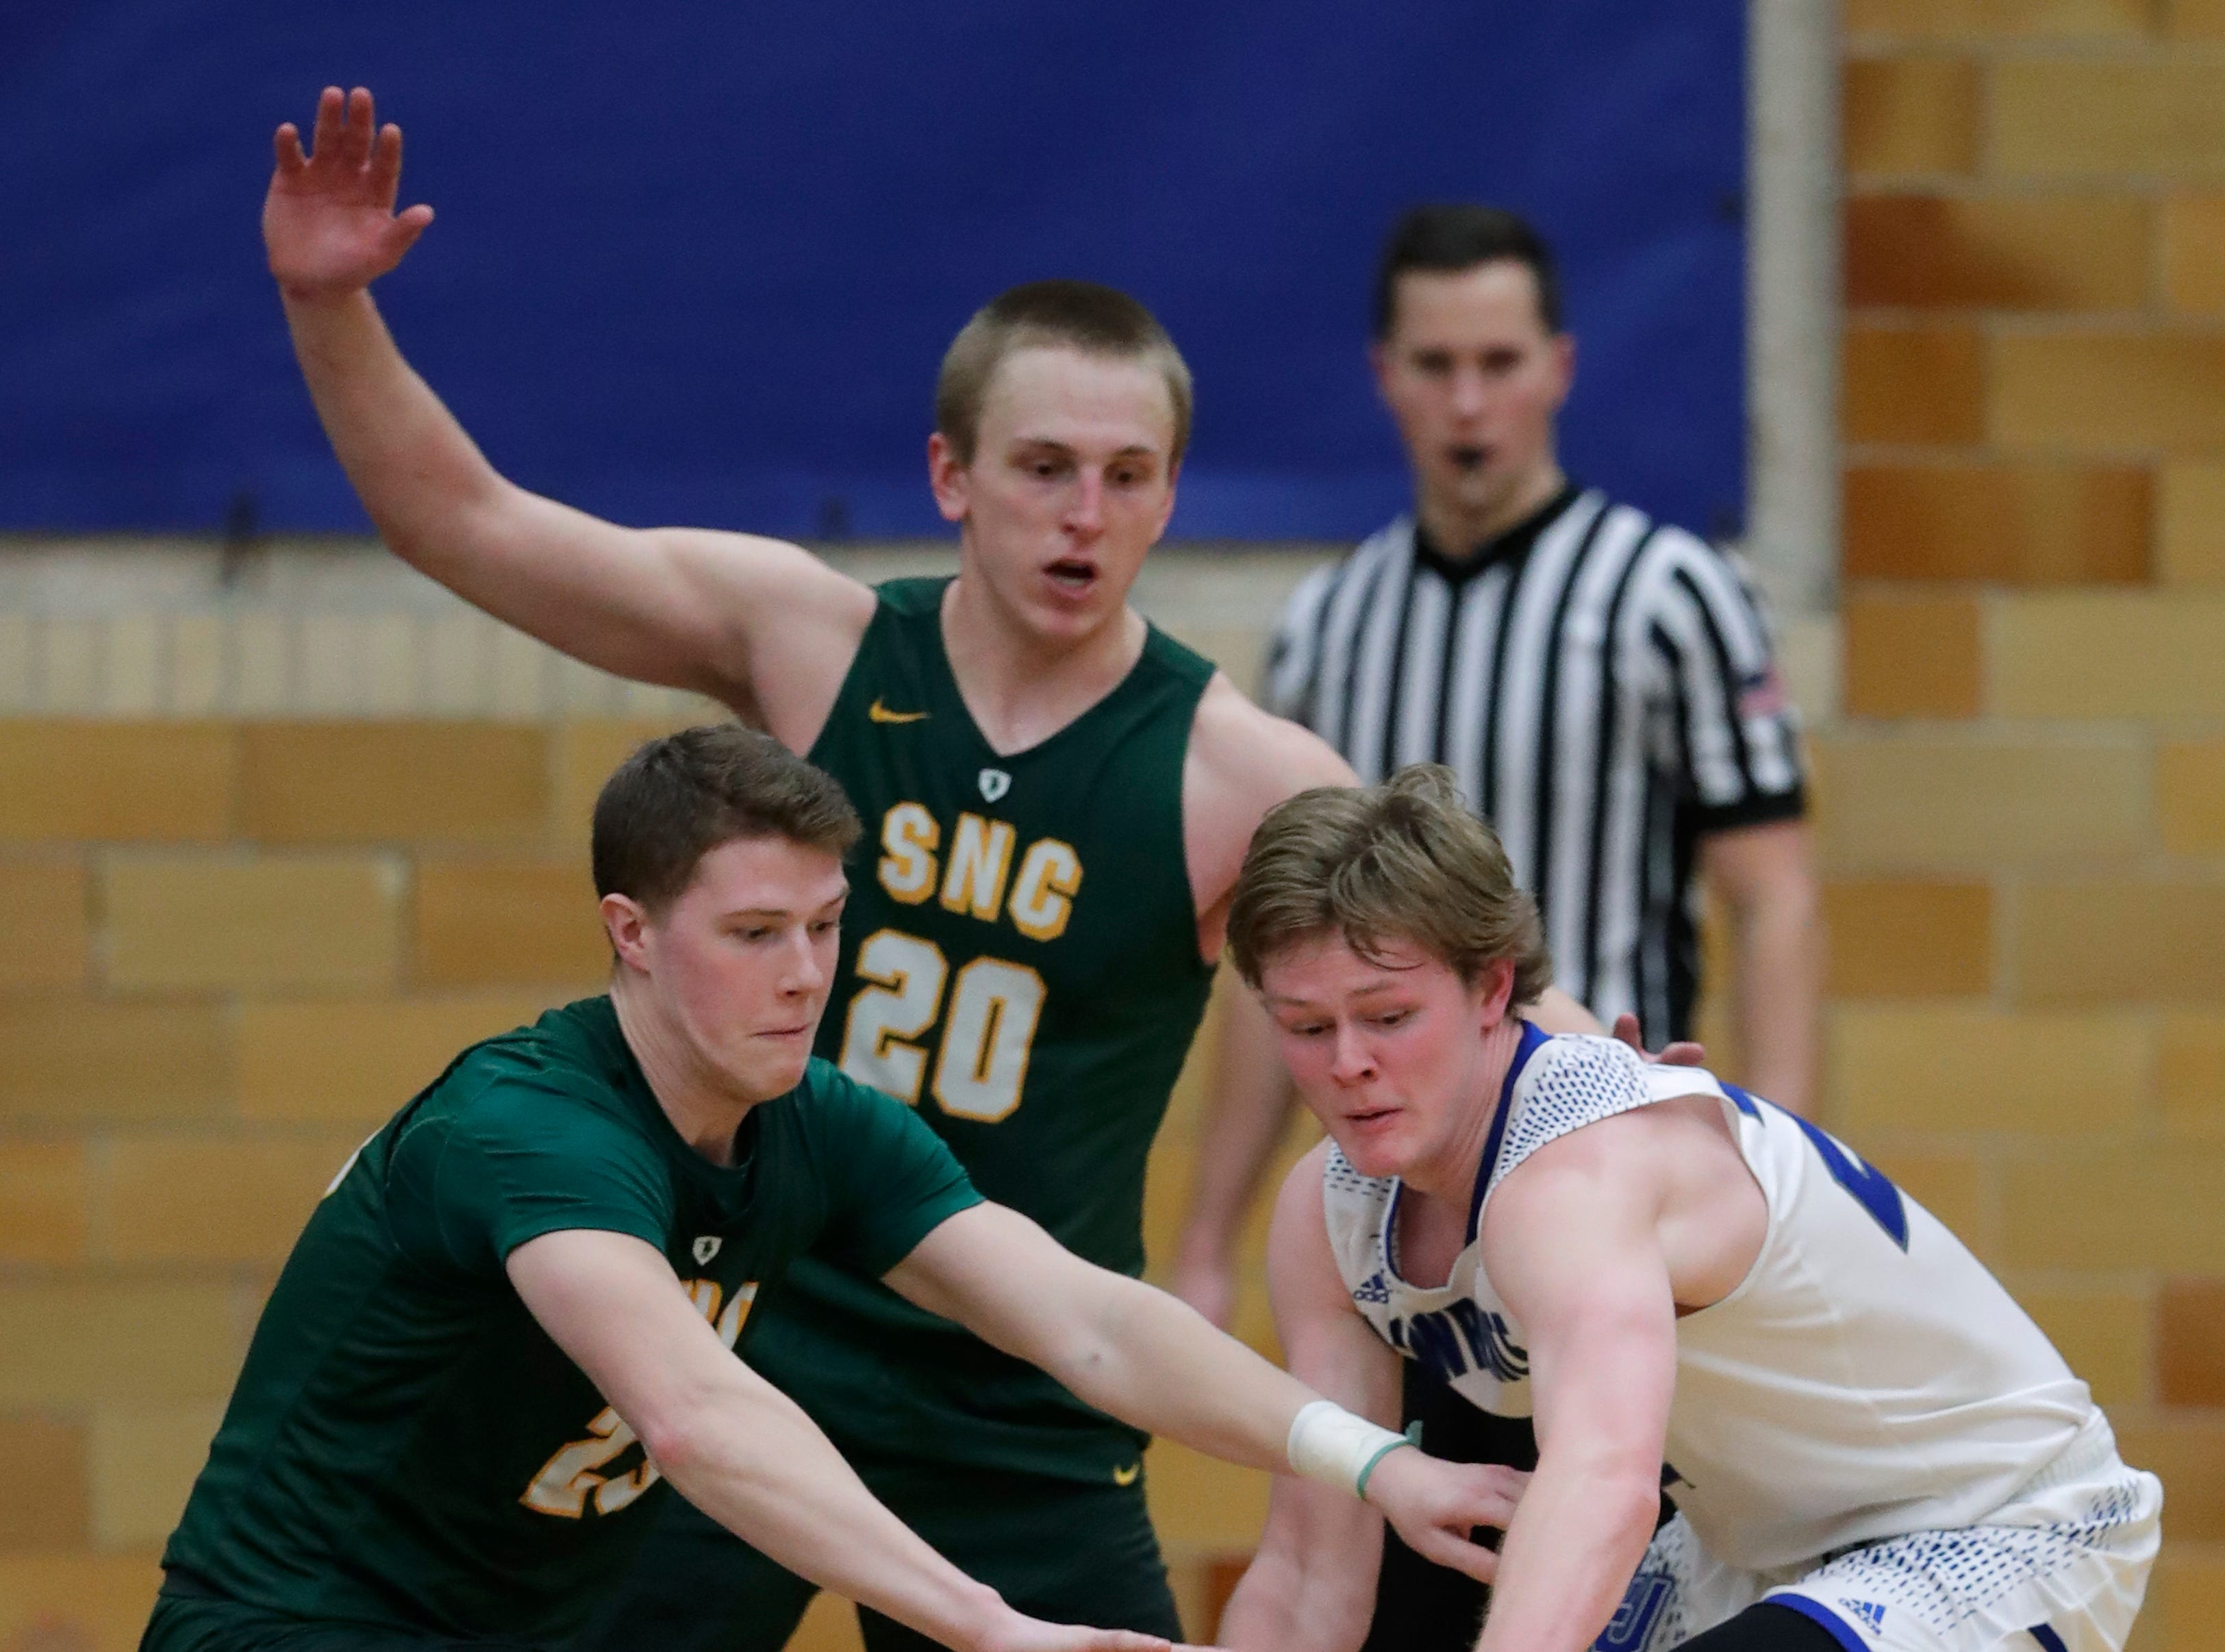 Lawrence University's Mason Maerna (22) tries to gain control of the ball against St. Norbert College's Drew Yetka (23) and Nolan Beirne (20) during their men's basketball game Thursday, January 31, 2019, at Alexander Gymnasium in Appleton, Wis. 